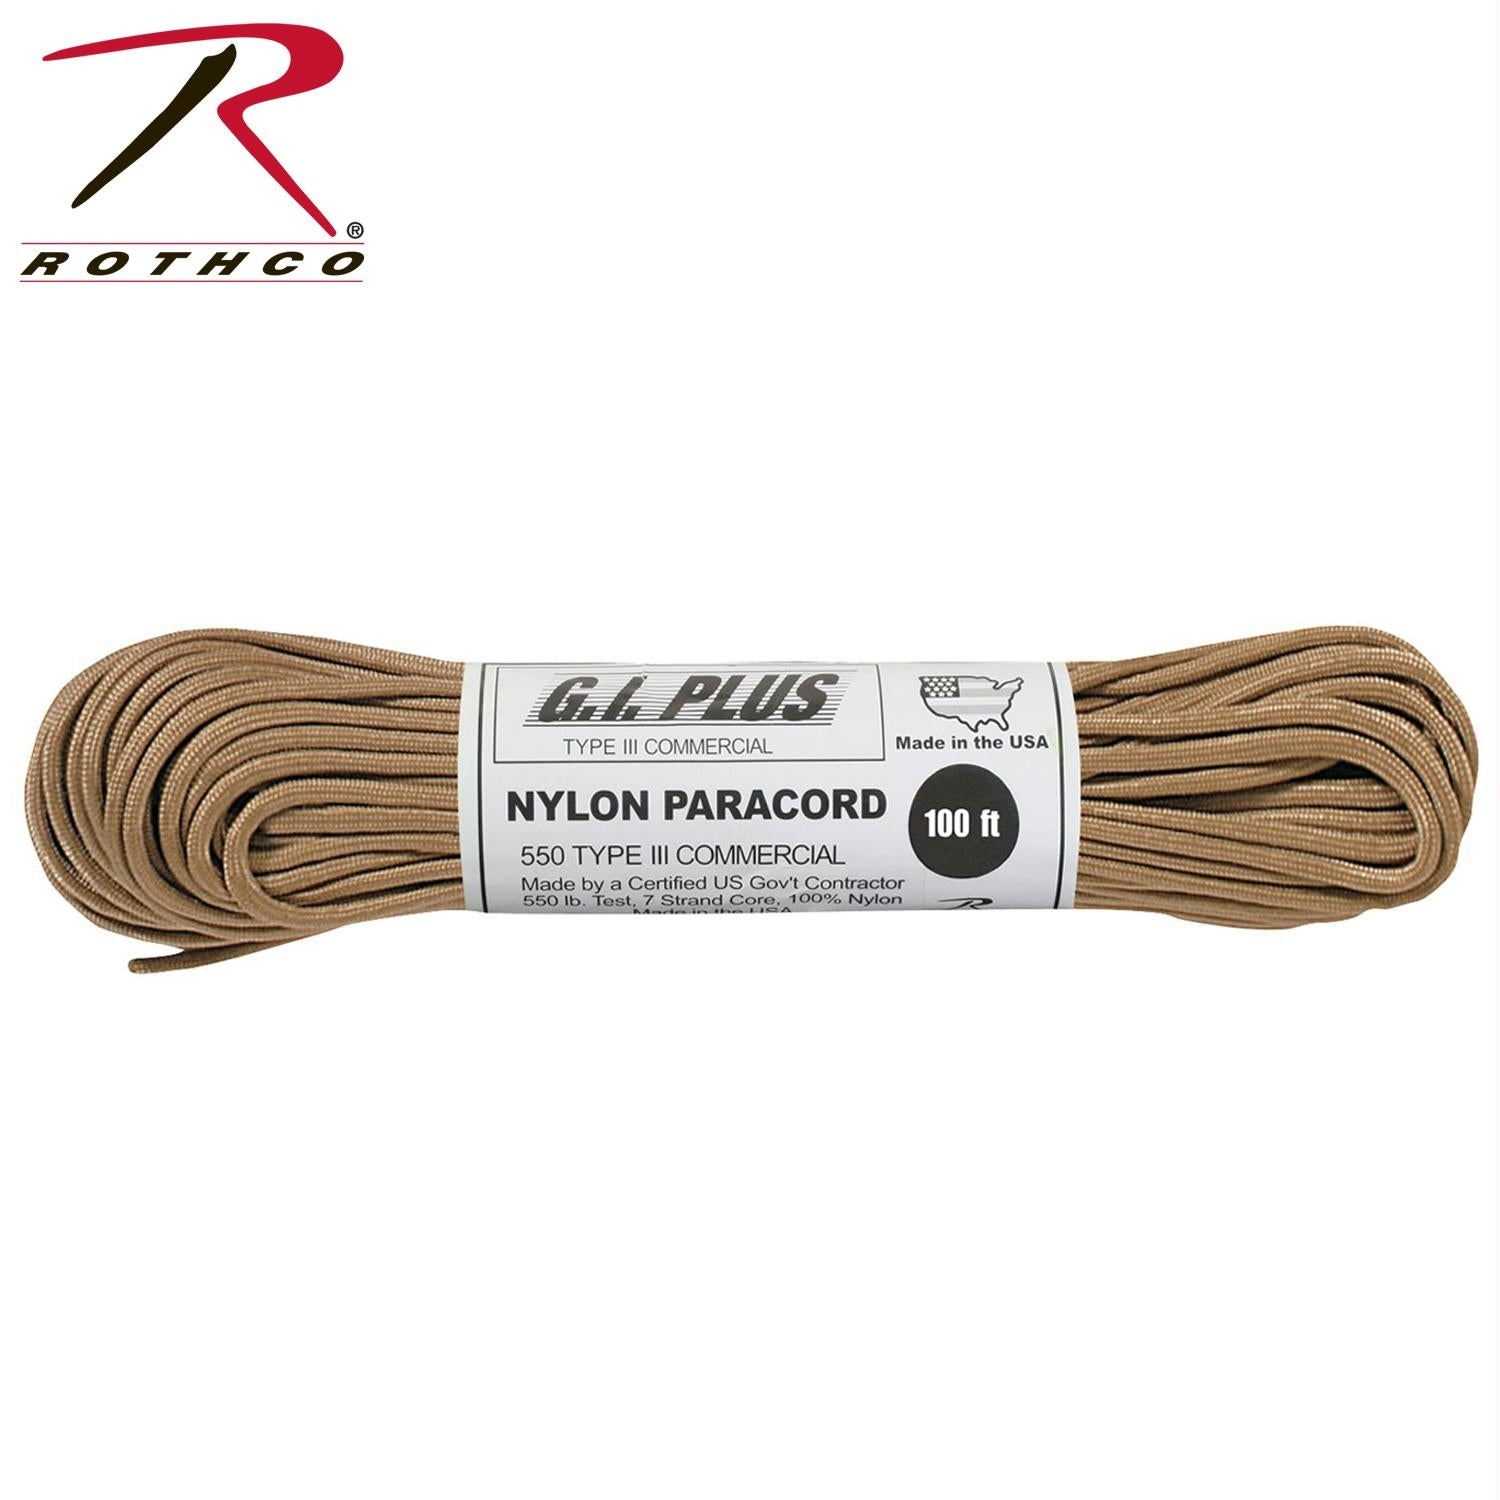 Rothco Nylon Paracord Type III 550 LB 100FT - Tan